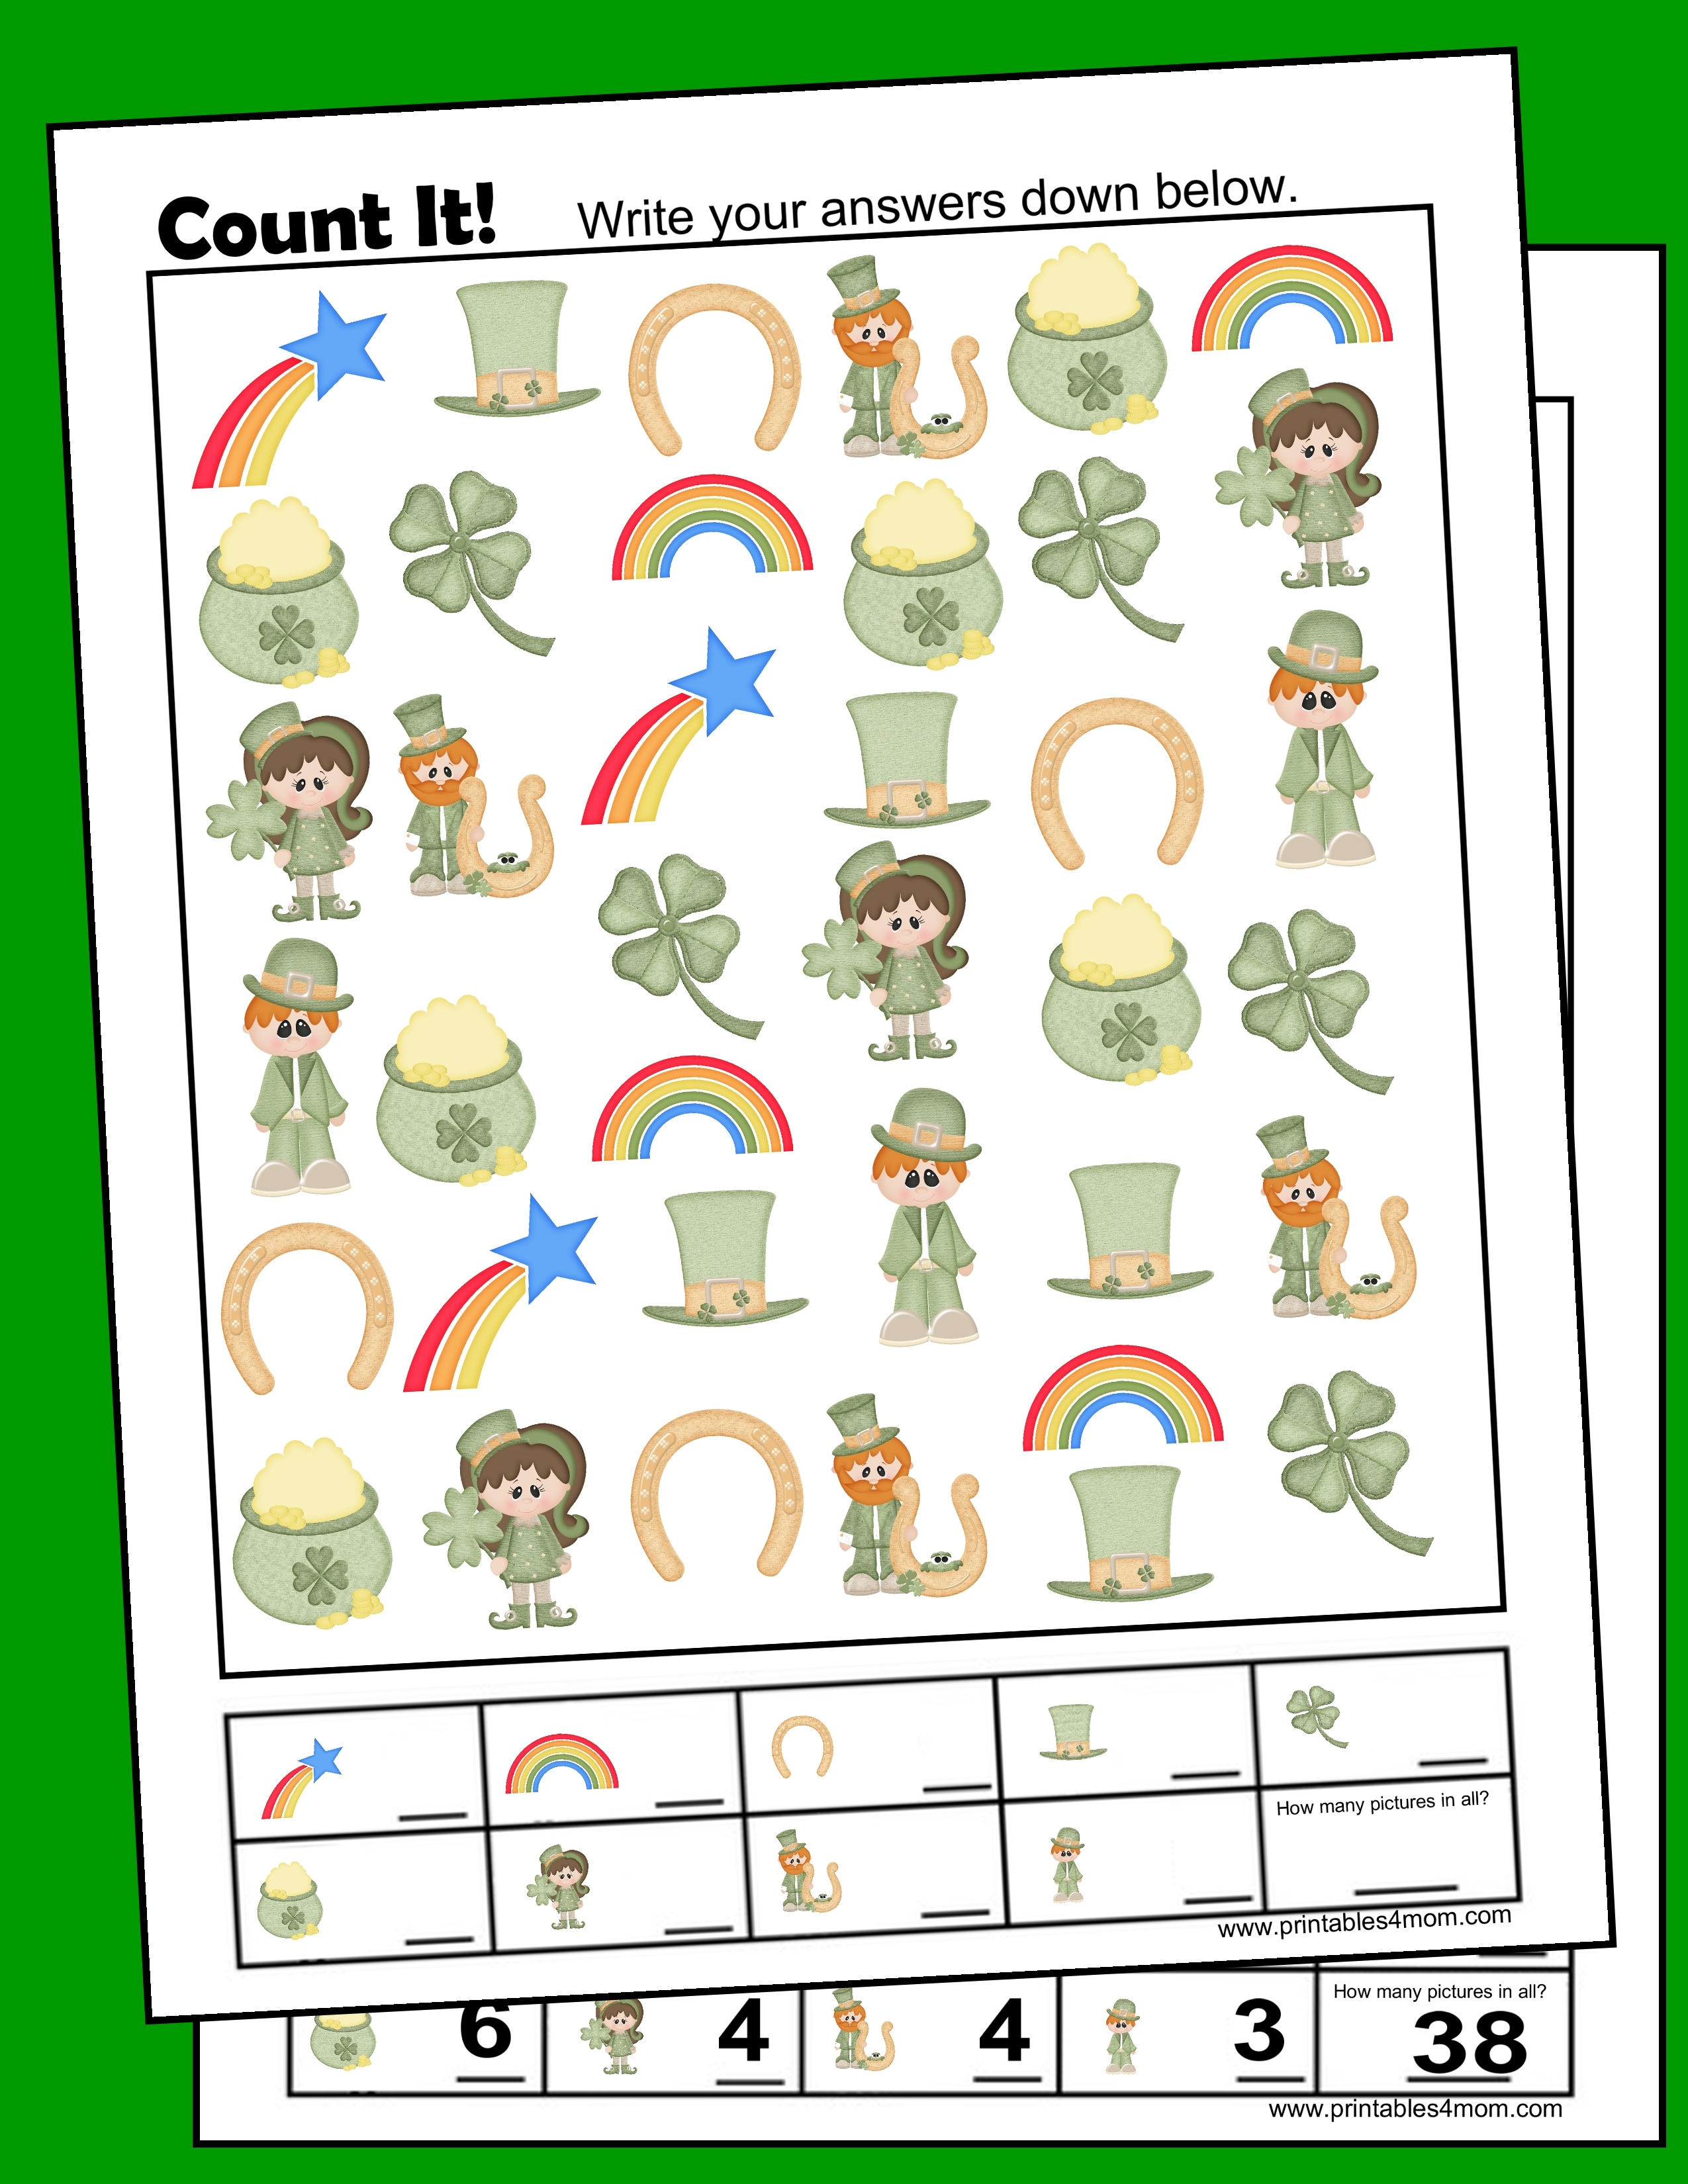 I Spy St. Patrick's Day Free Printable Counting Worksheet